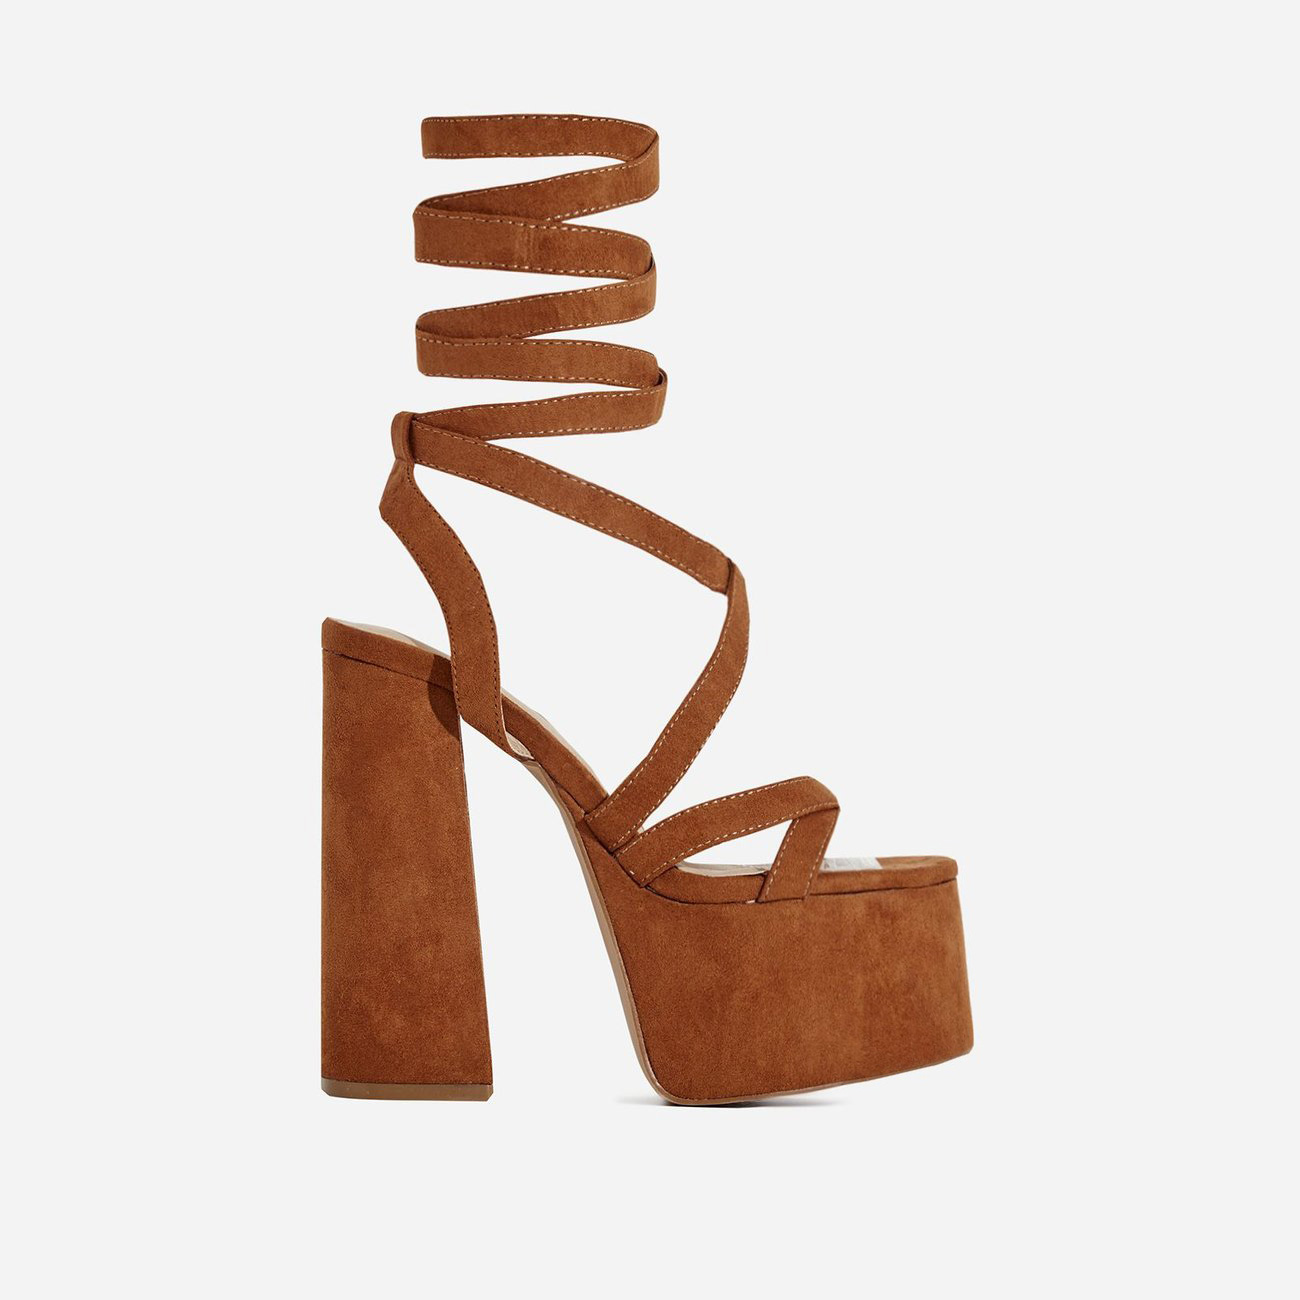 Harlow Lace Up Platform Heel In Tan Faux Suede